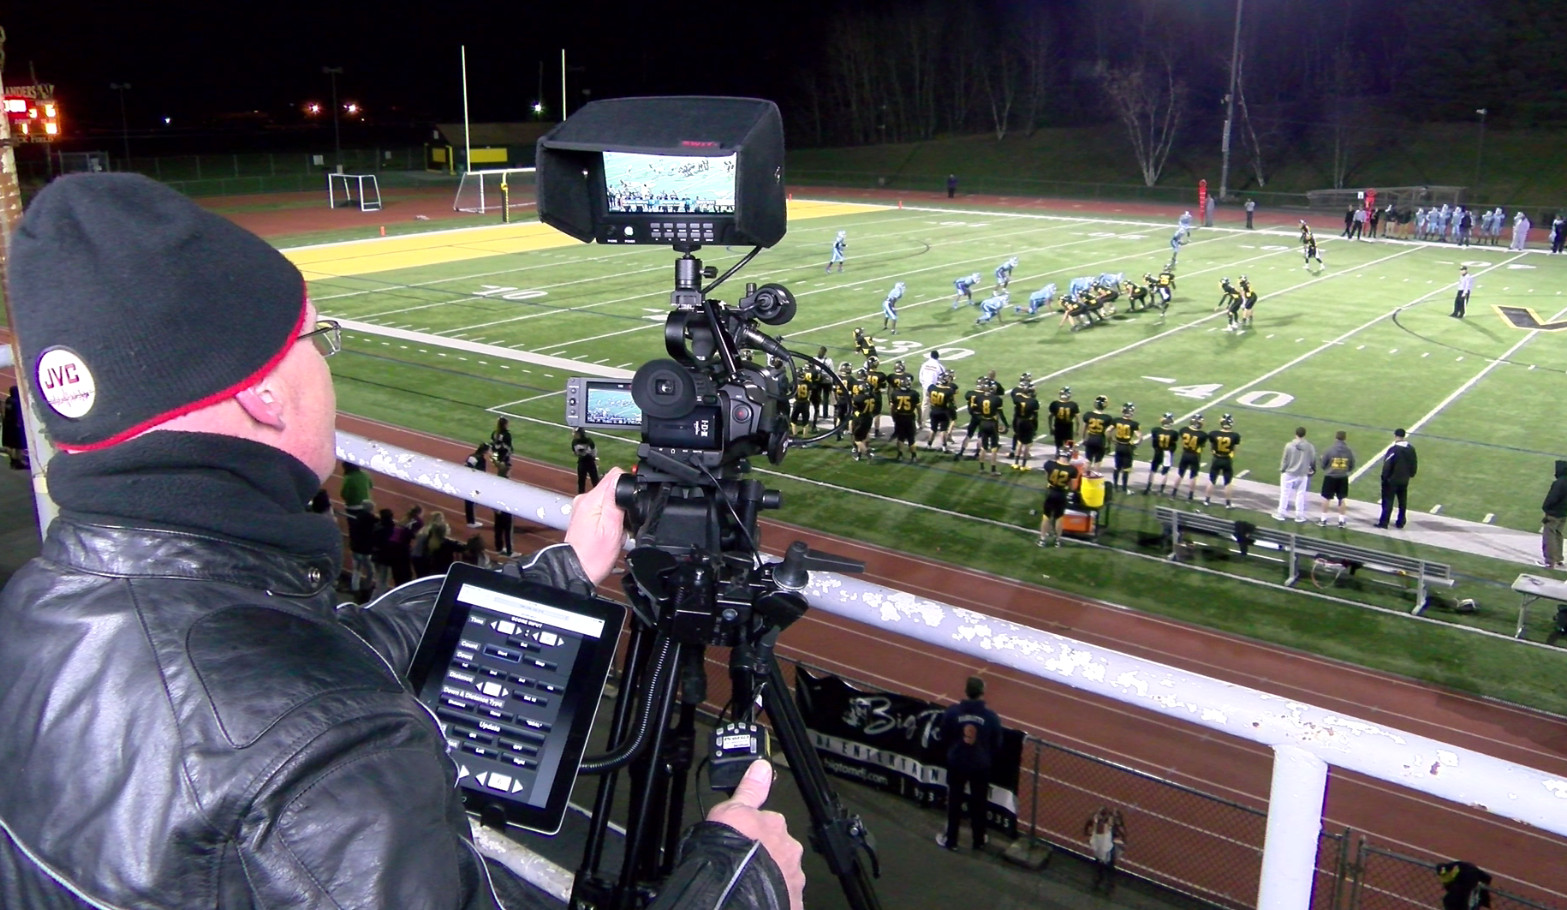 The camcorder rigged up with a Tablet sending the graphics to the camera's output.